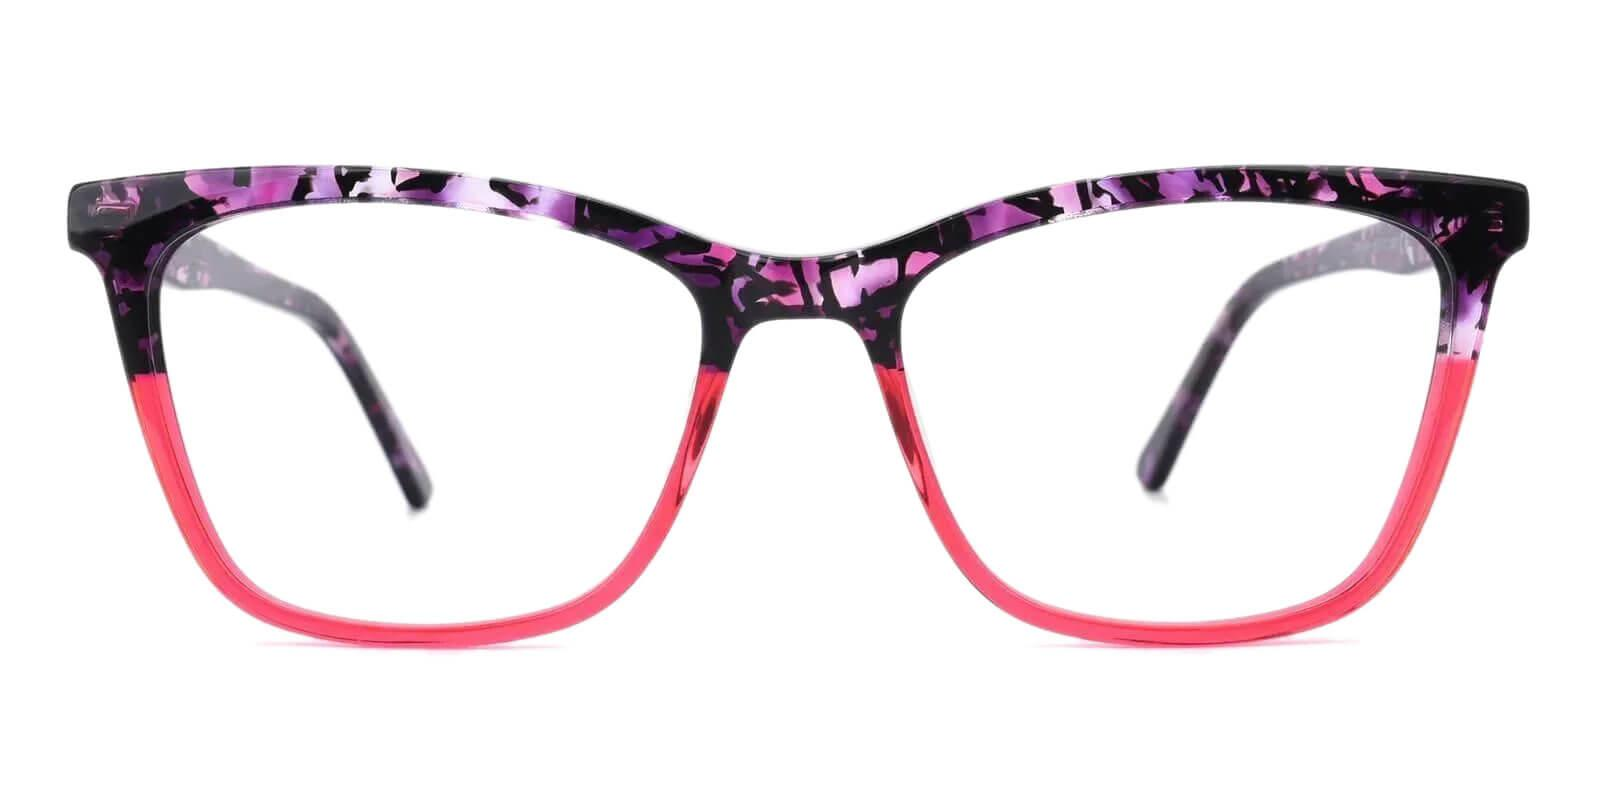 Masser Purple Acetate Eyeglasses , UniversalBridgeFit Frames from ABBE Glasses